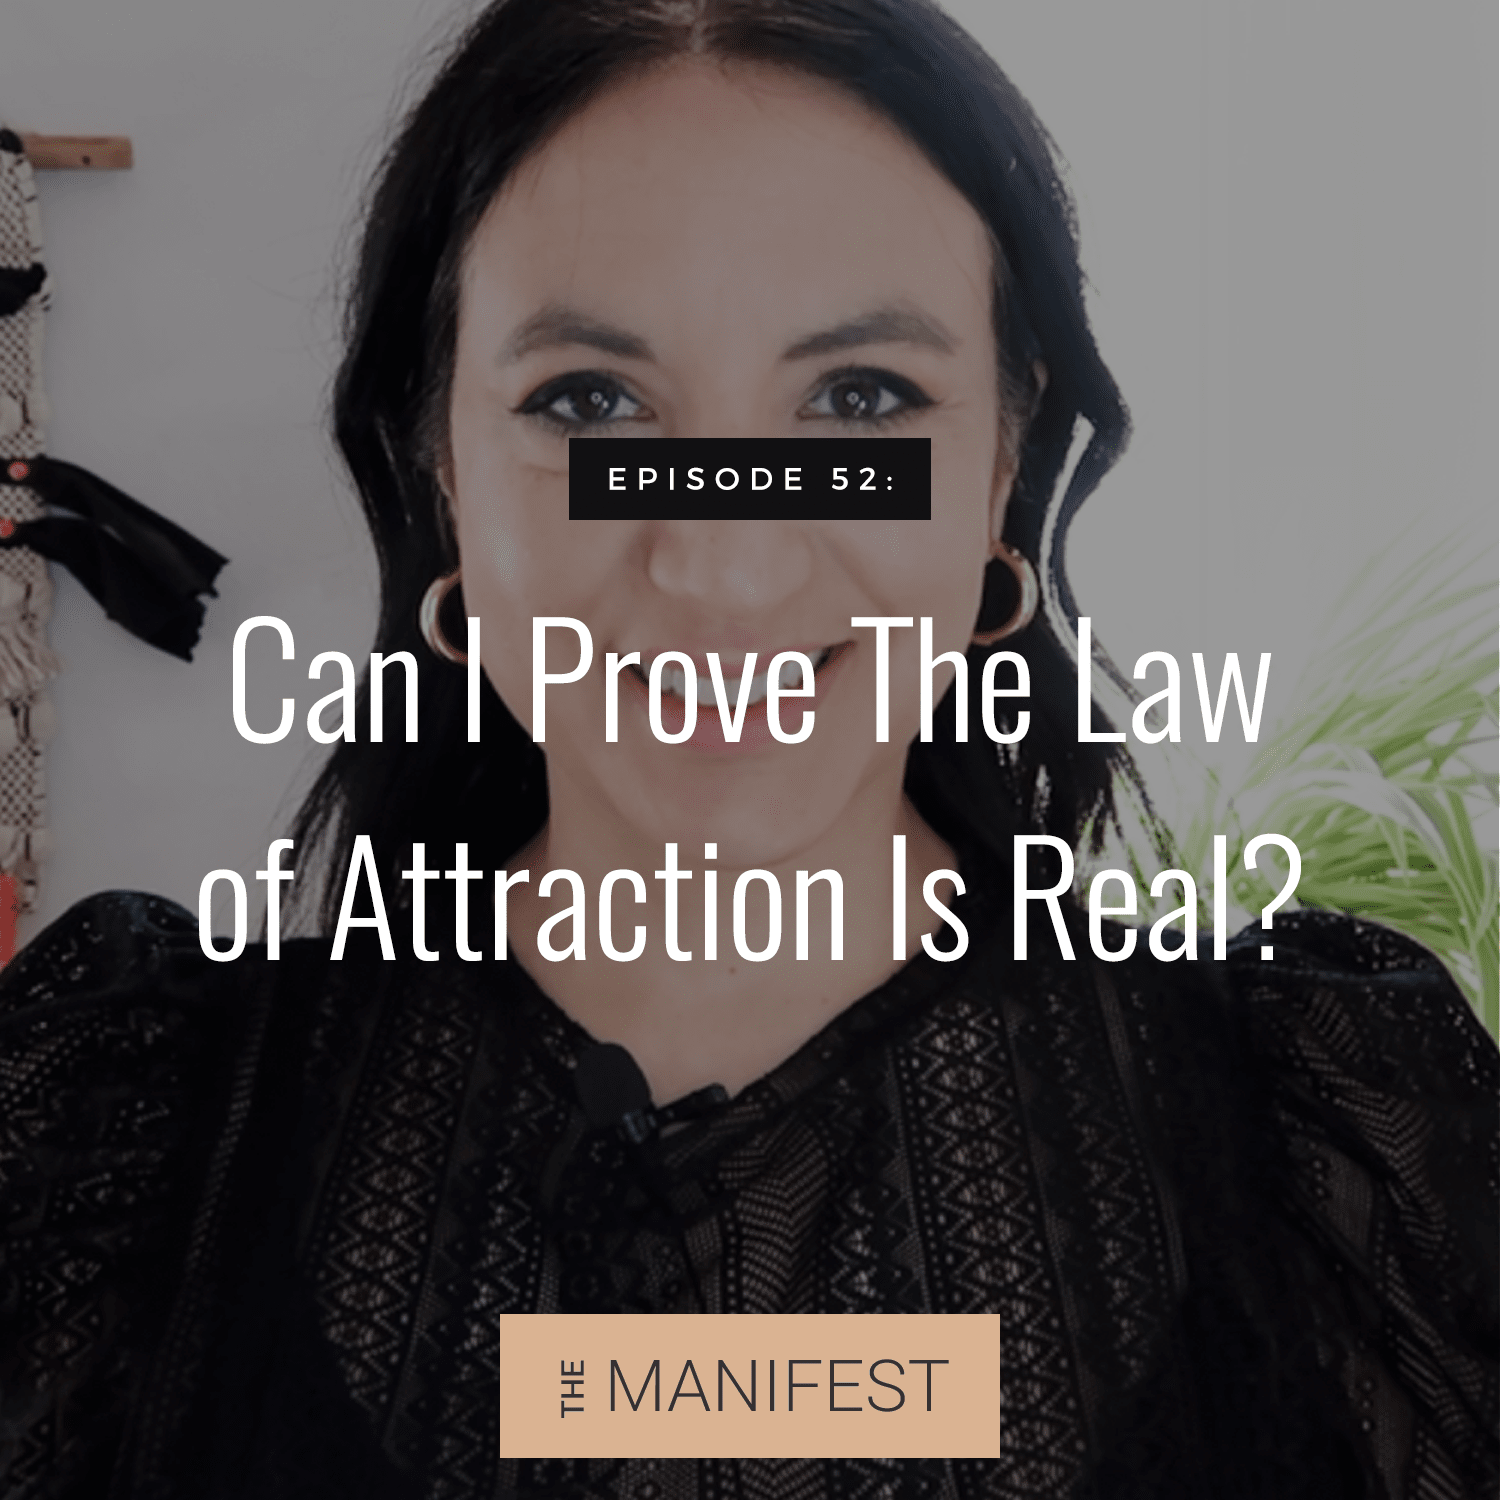 Episode #52: Can I Prove The Law of Attraction is Real?